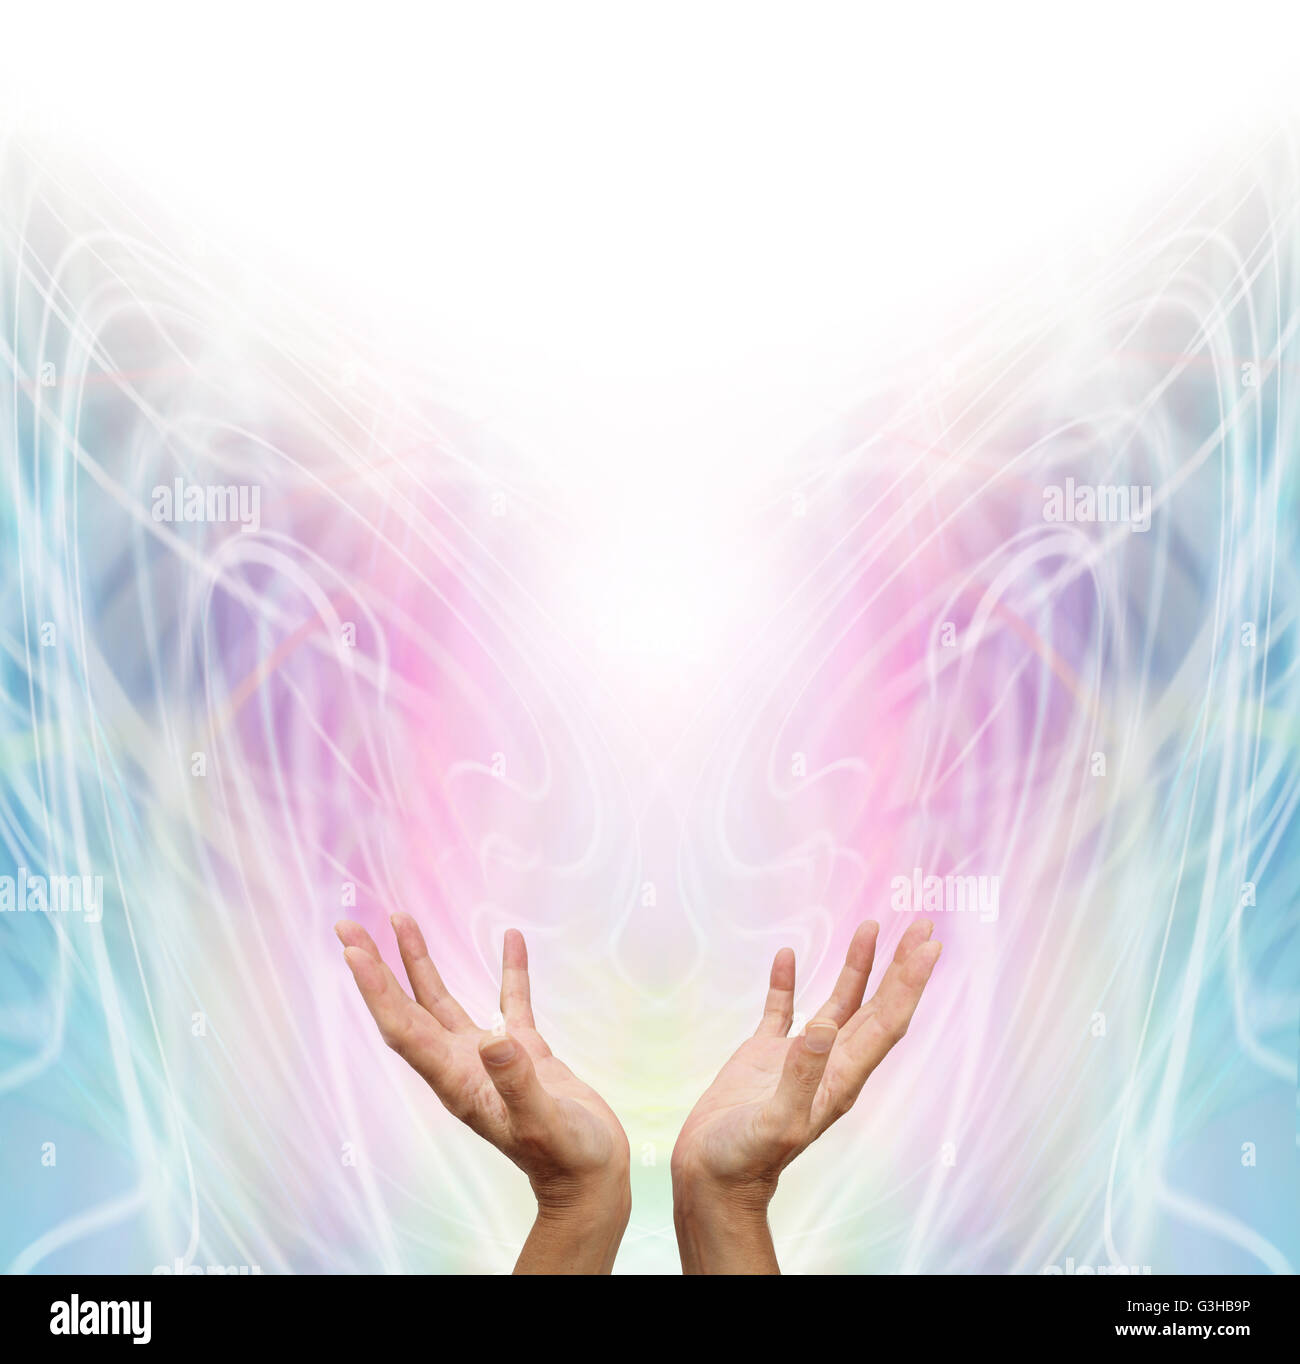 Faith Healing Stock Photos & Faith Healing Stock Images - Alamy